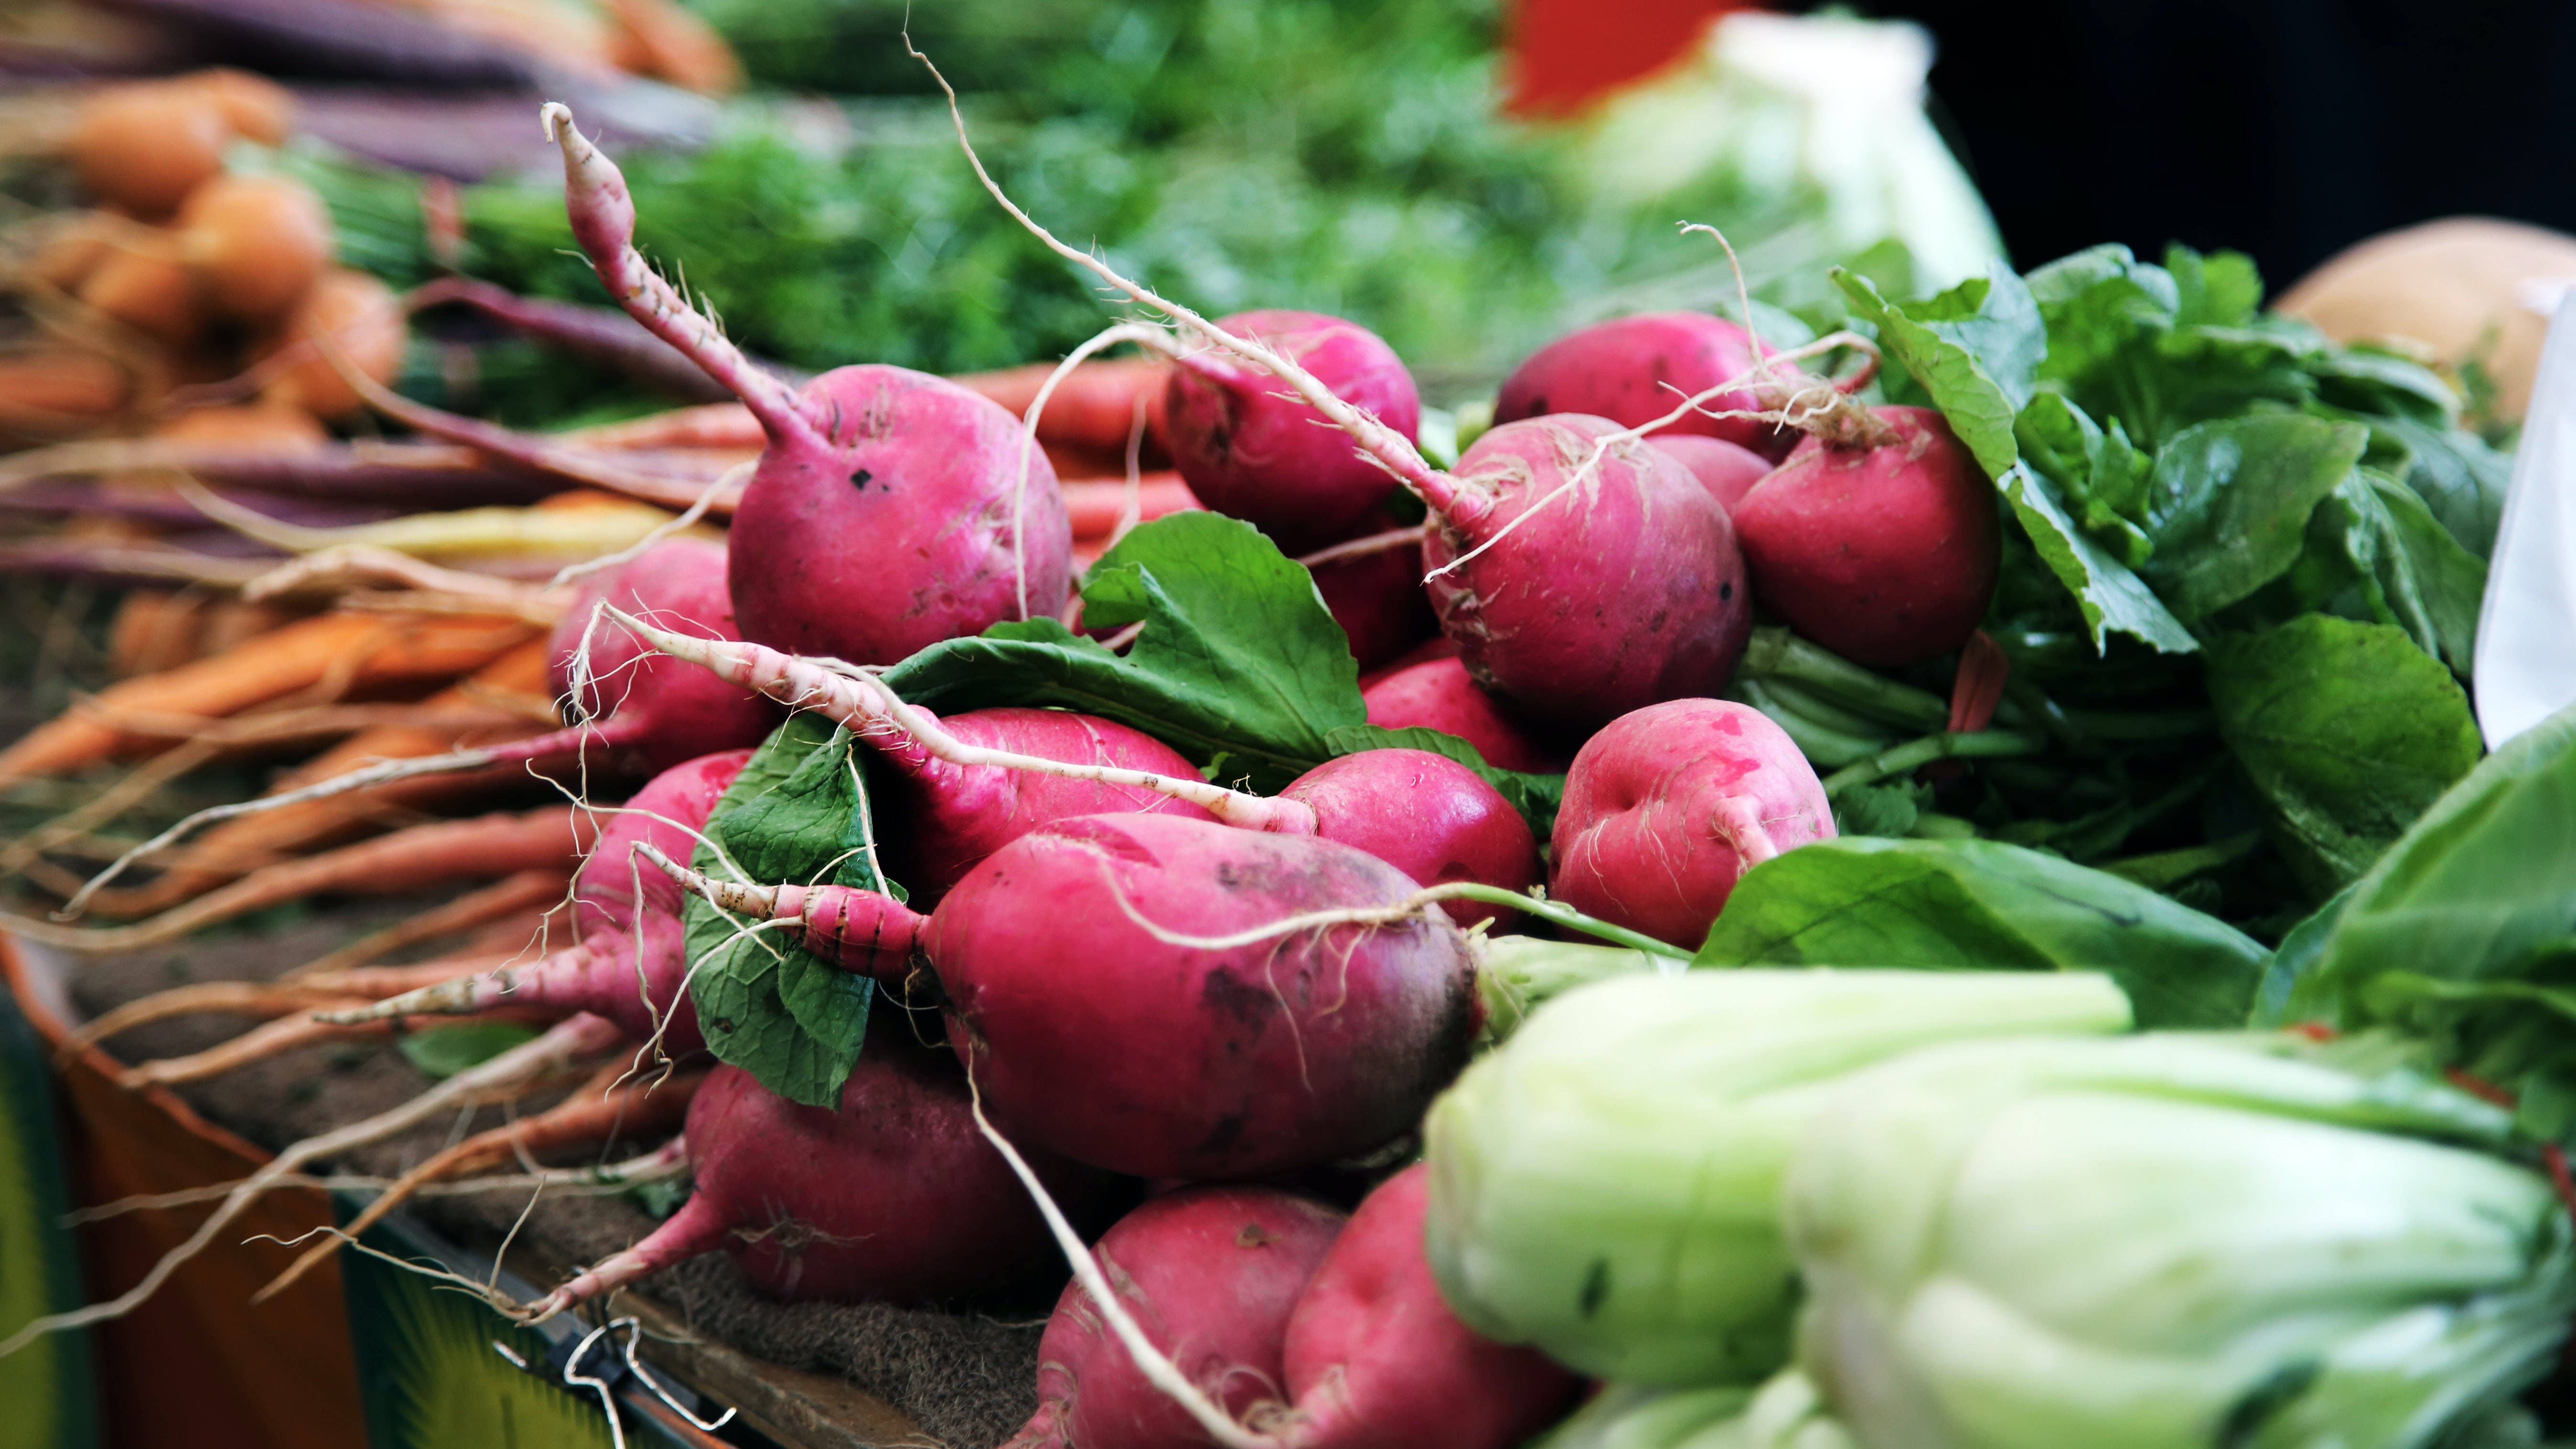 Radishes and other vegetables in an open air market in the city